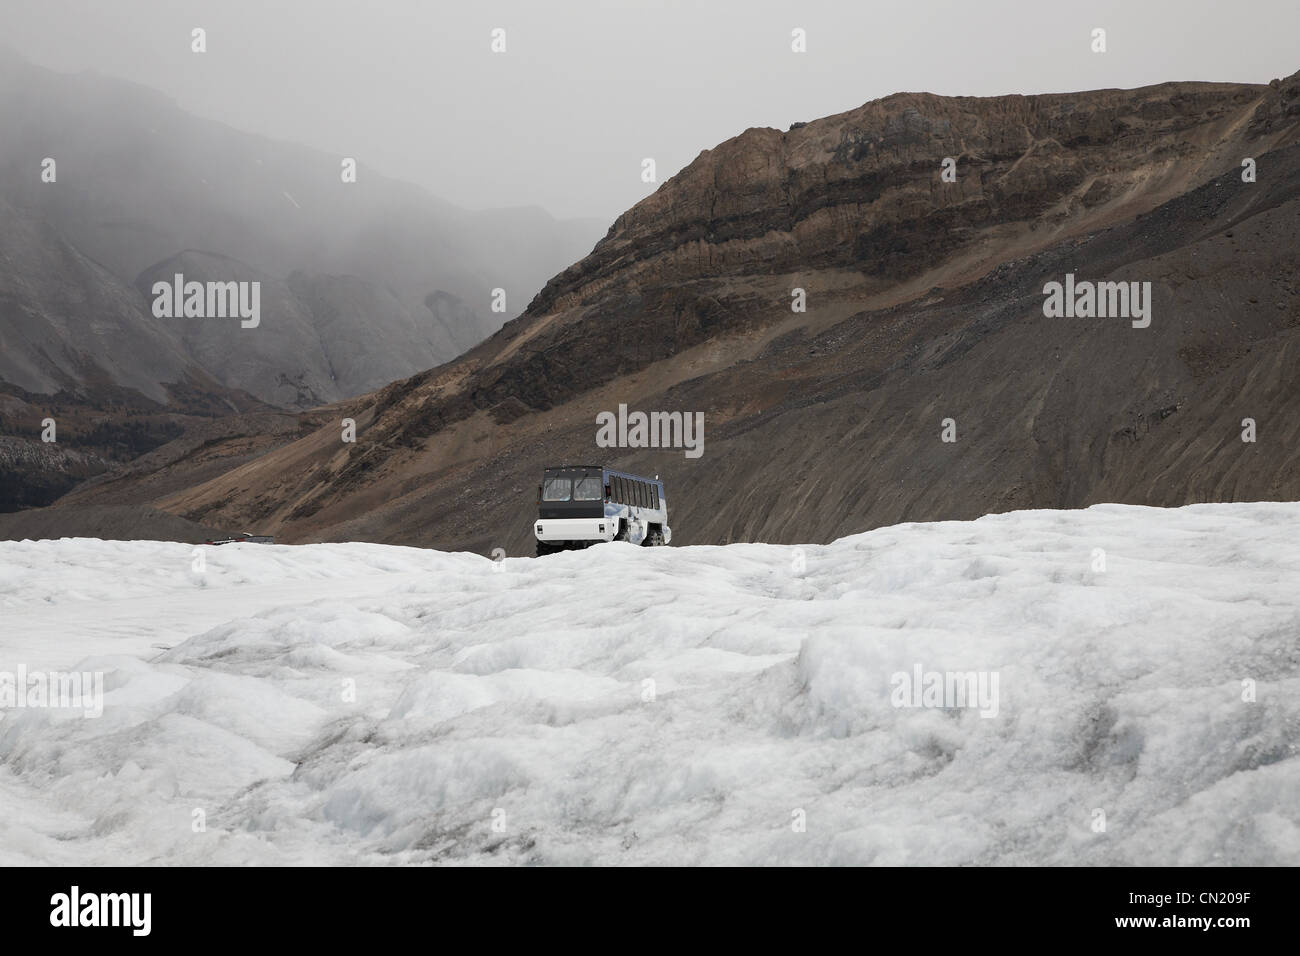 Snowmobile on glacier, Canada - Stock Image